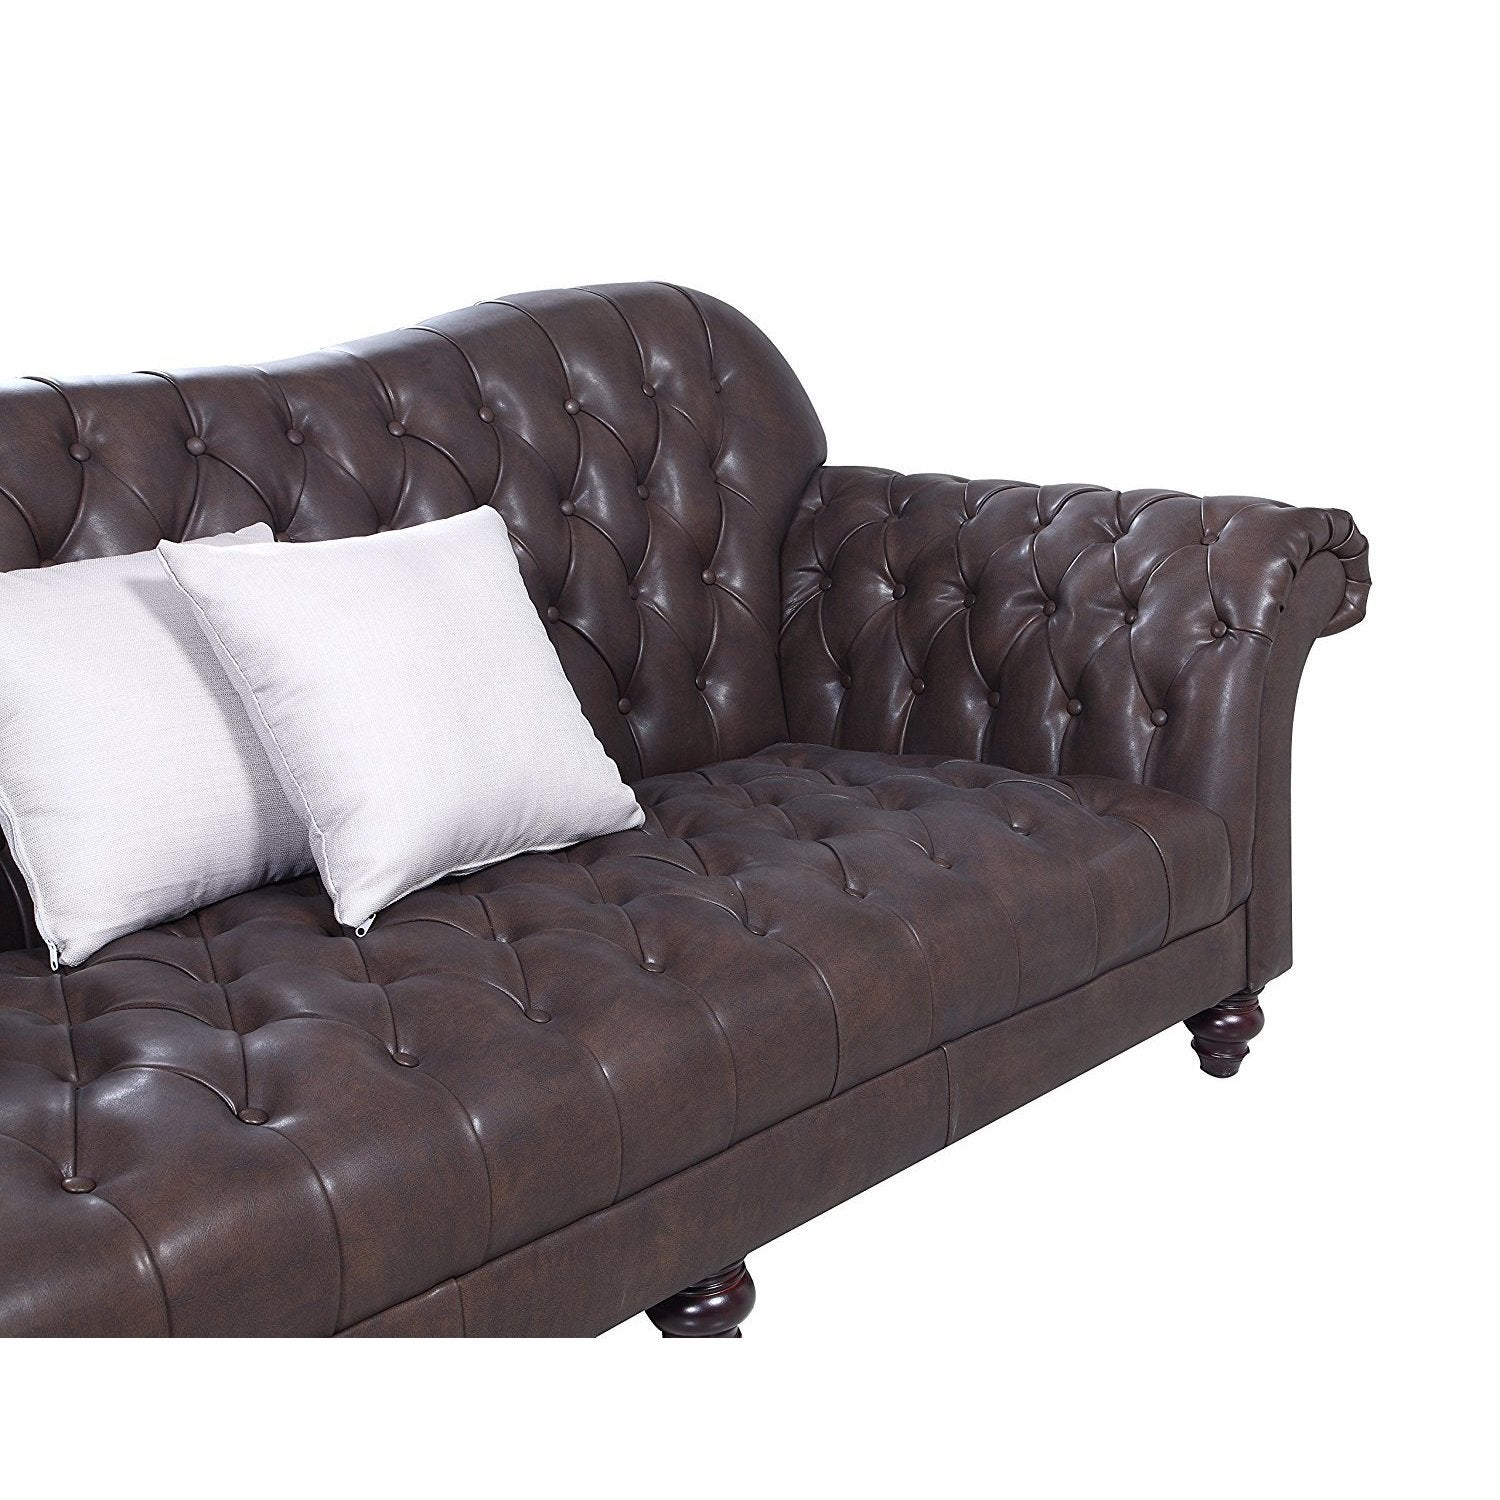 Clic Tufted Real Italian Leather Victorian Sofa Free Shipping Today 14705847